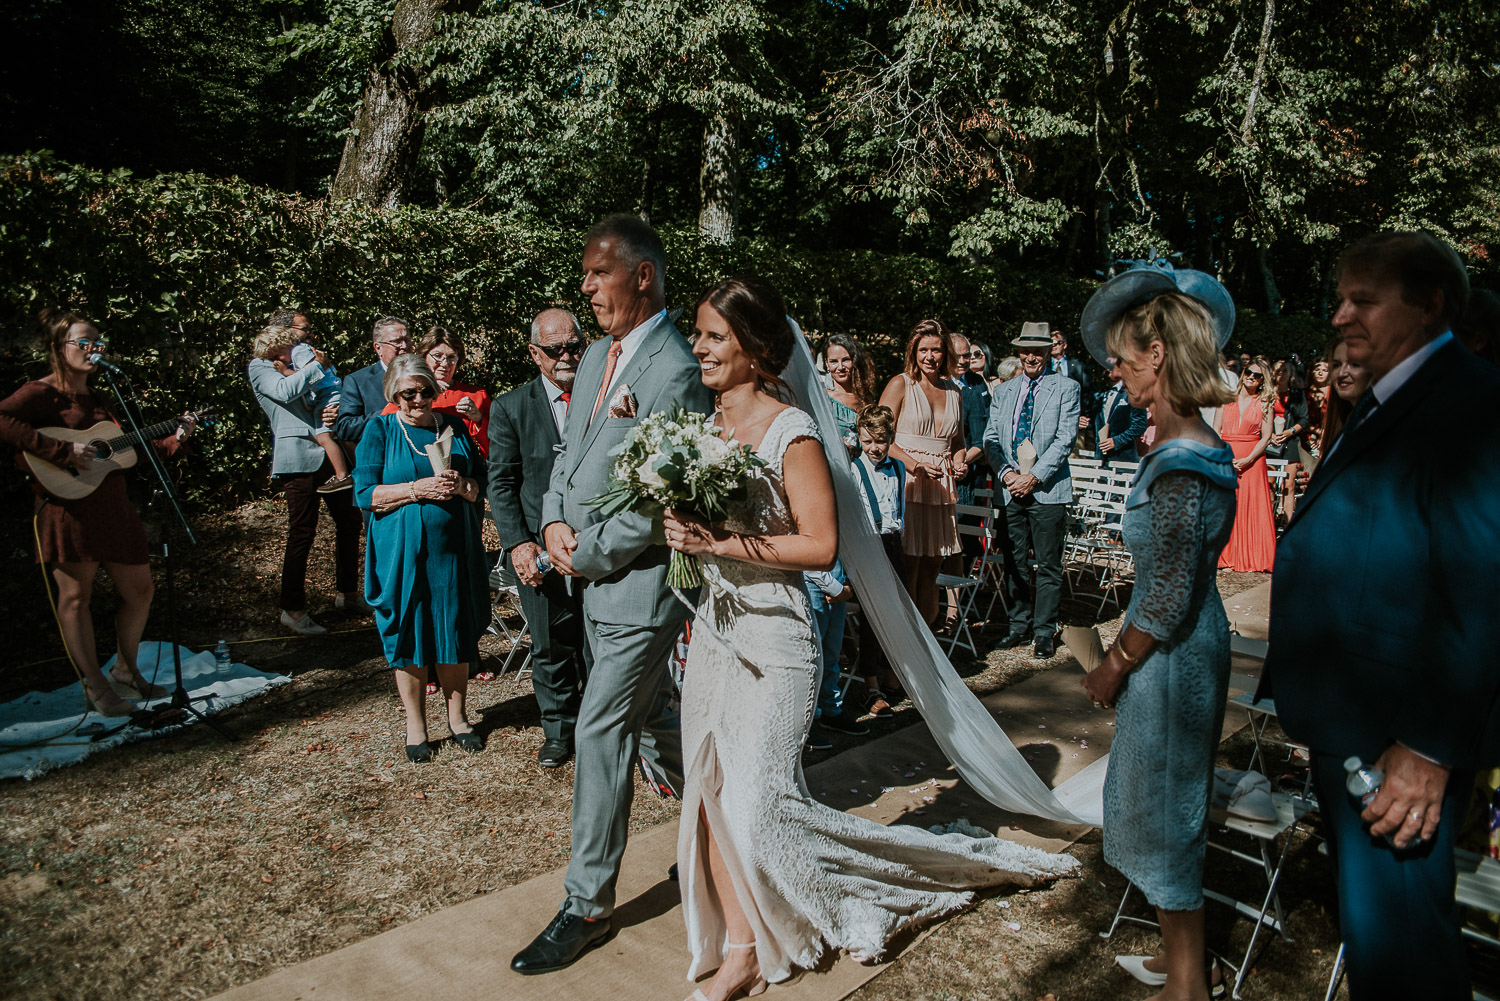 bergerac_wedding_katy_webb_photography_france_UK87